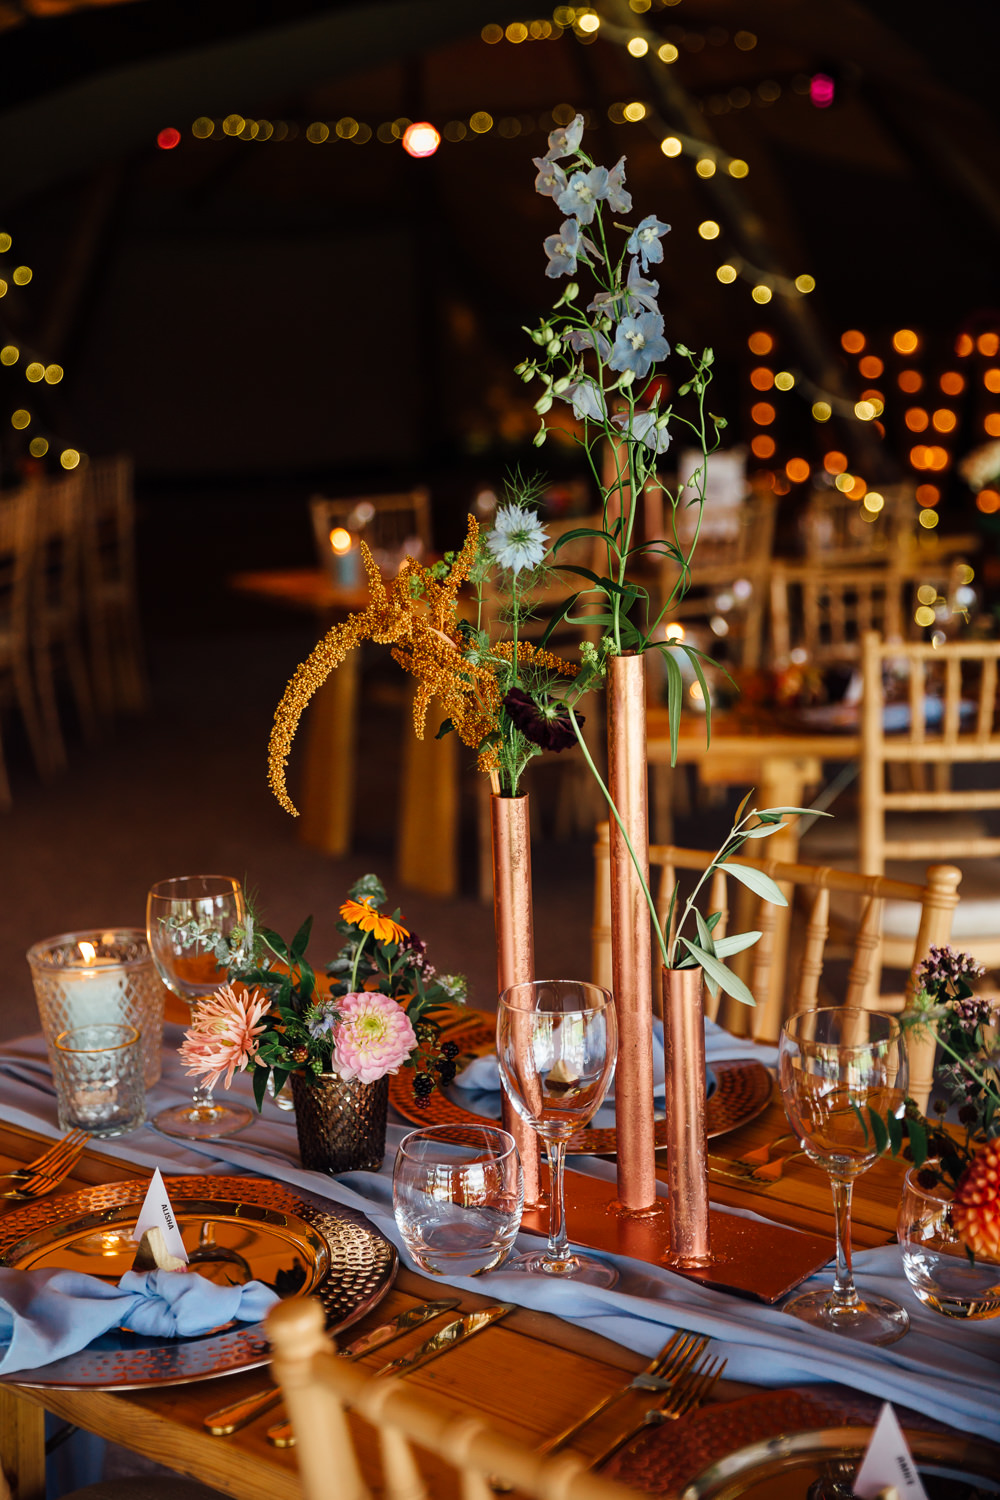 Copper Pipe Flowers Centrepice Decor Decoration Autumn Festival Wedding Ideas Indigo and Violet Photography